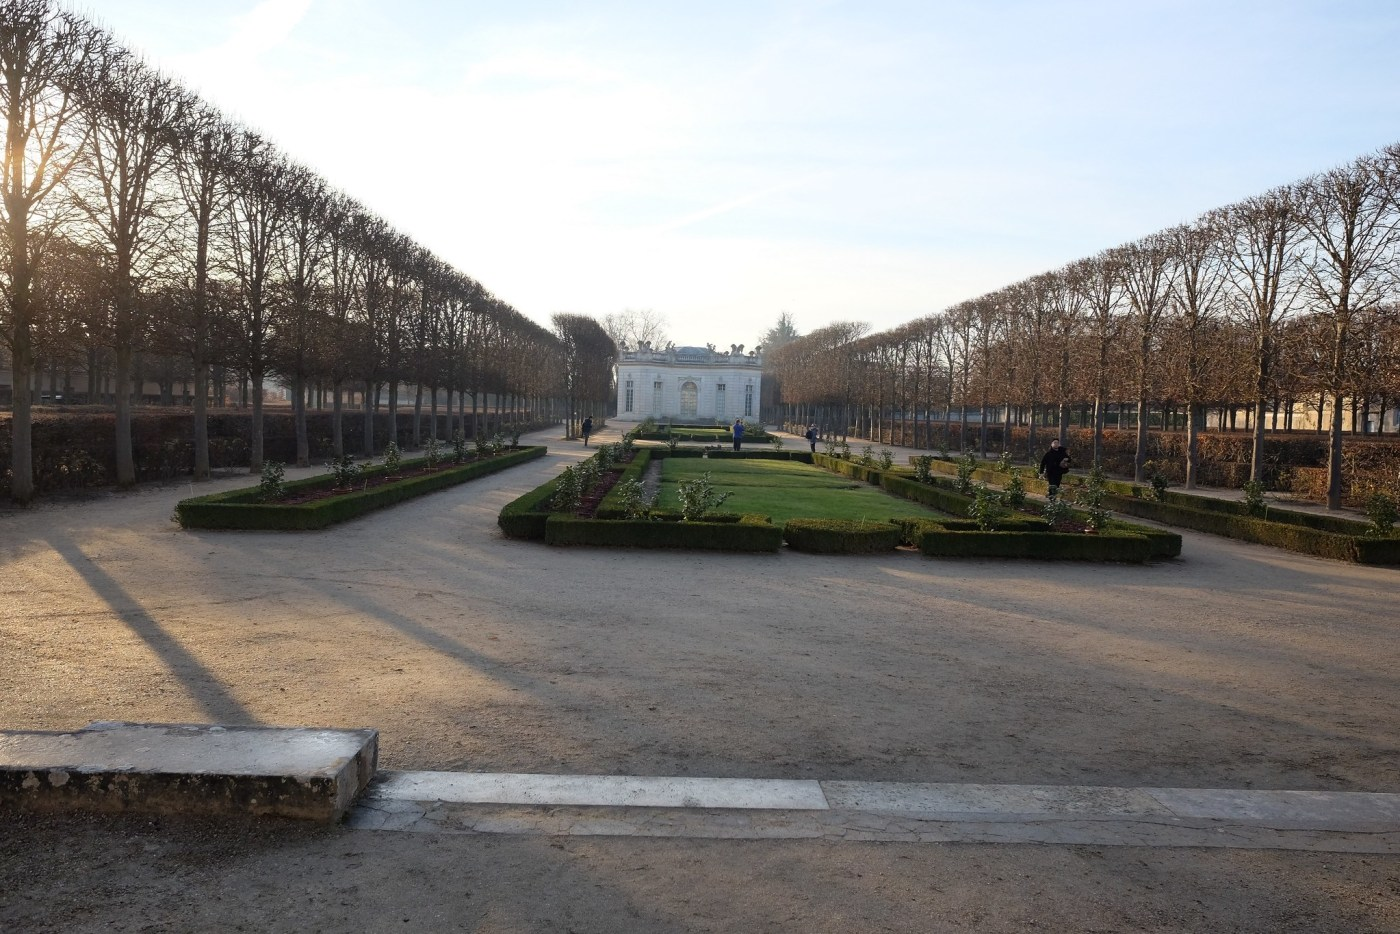 Petit Trianon located on the grounds of the Palace of Versailles